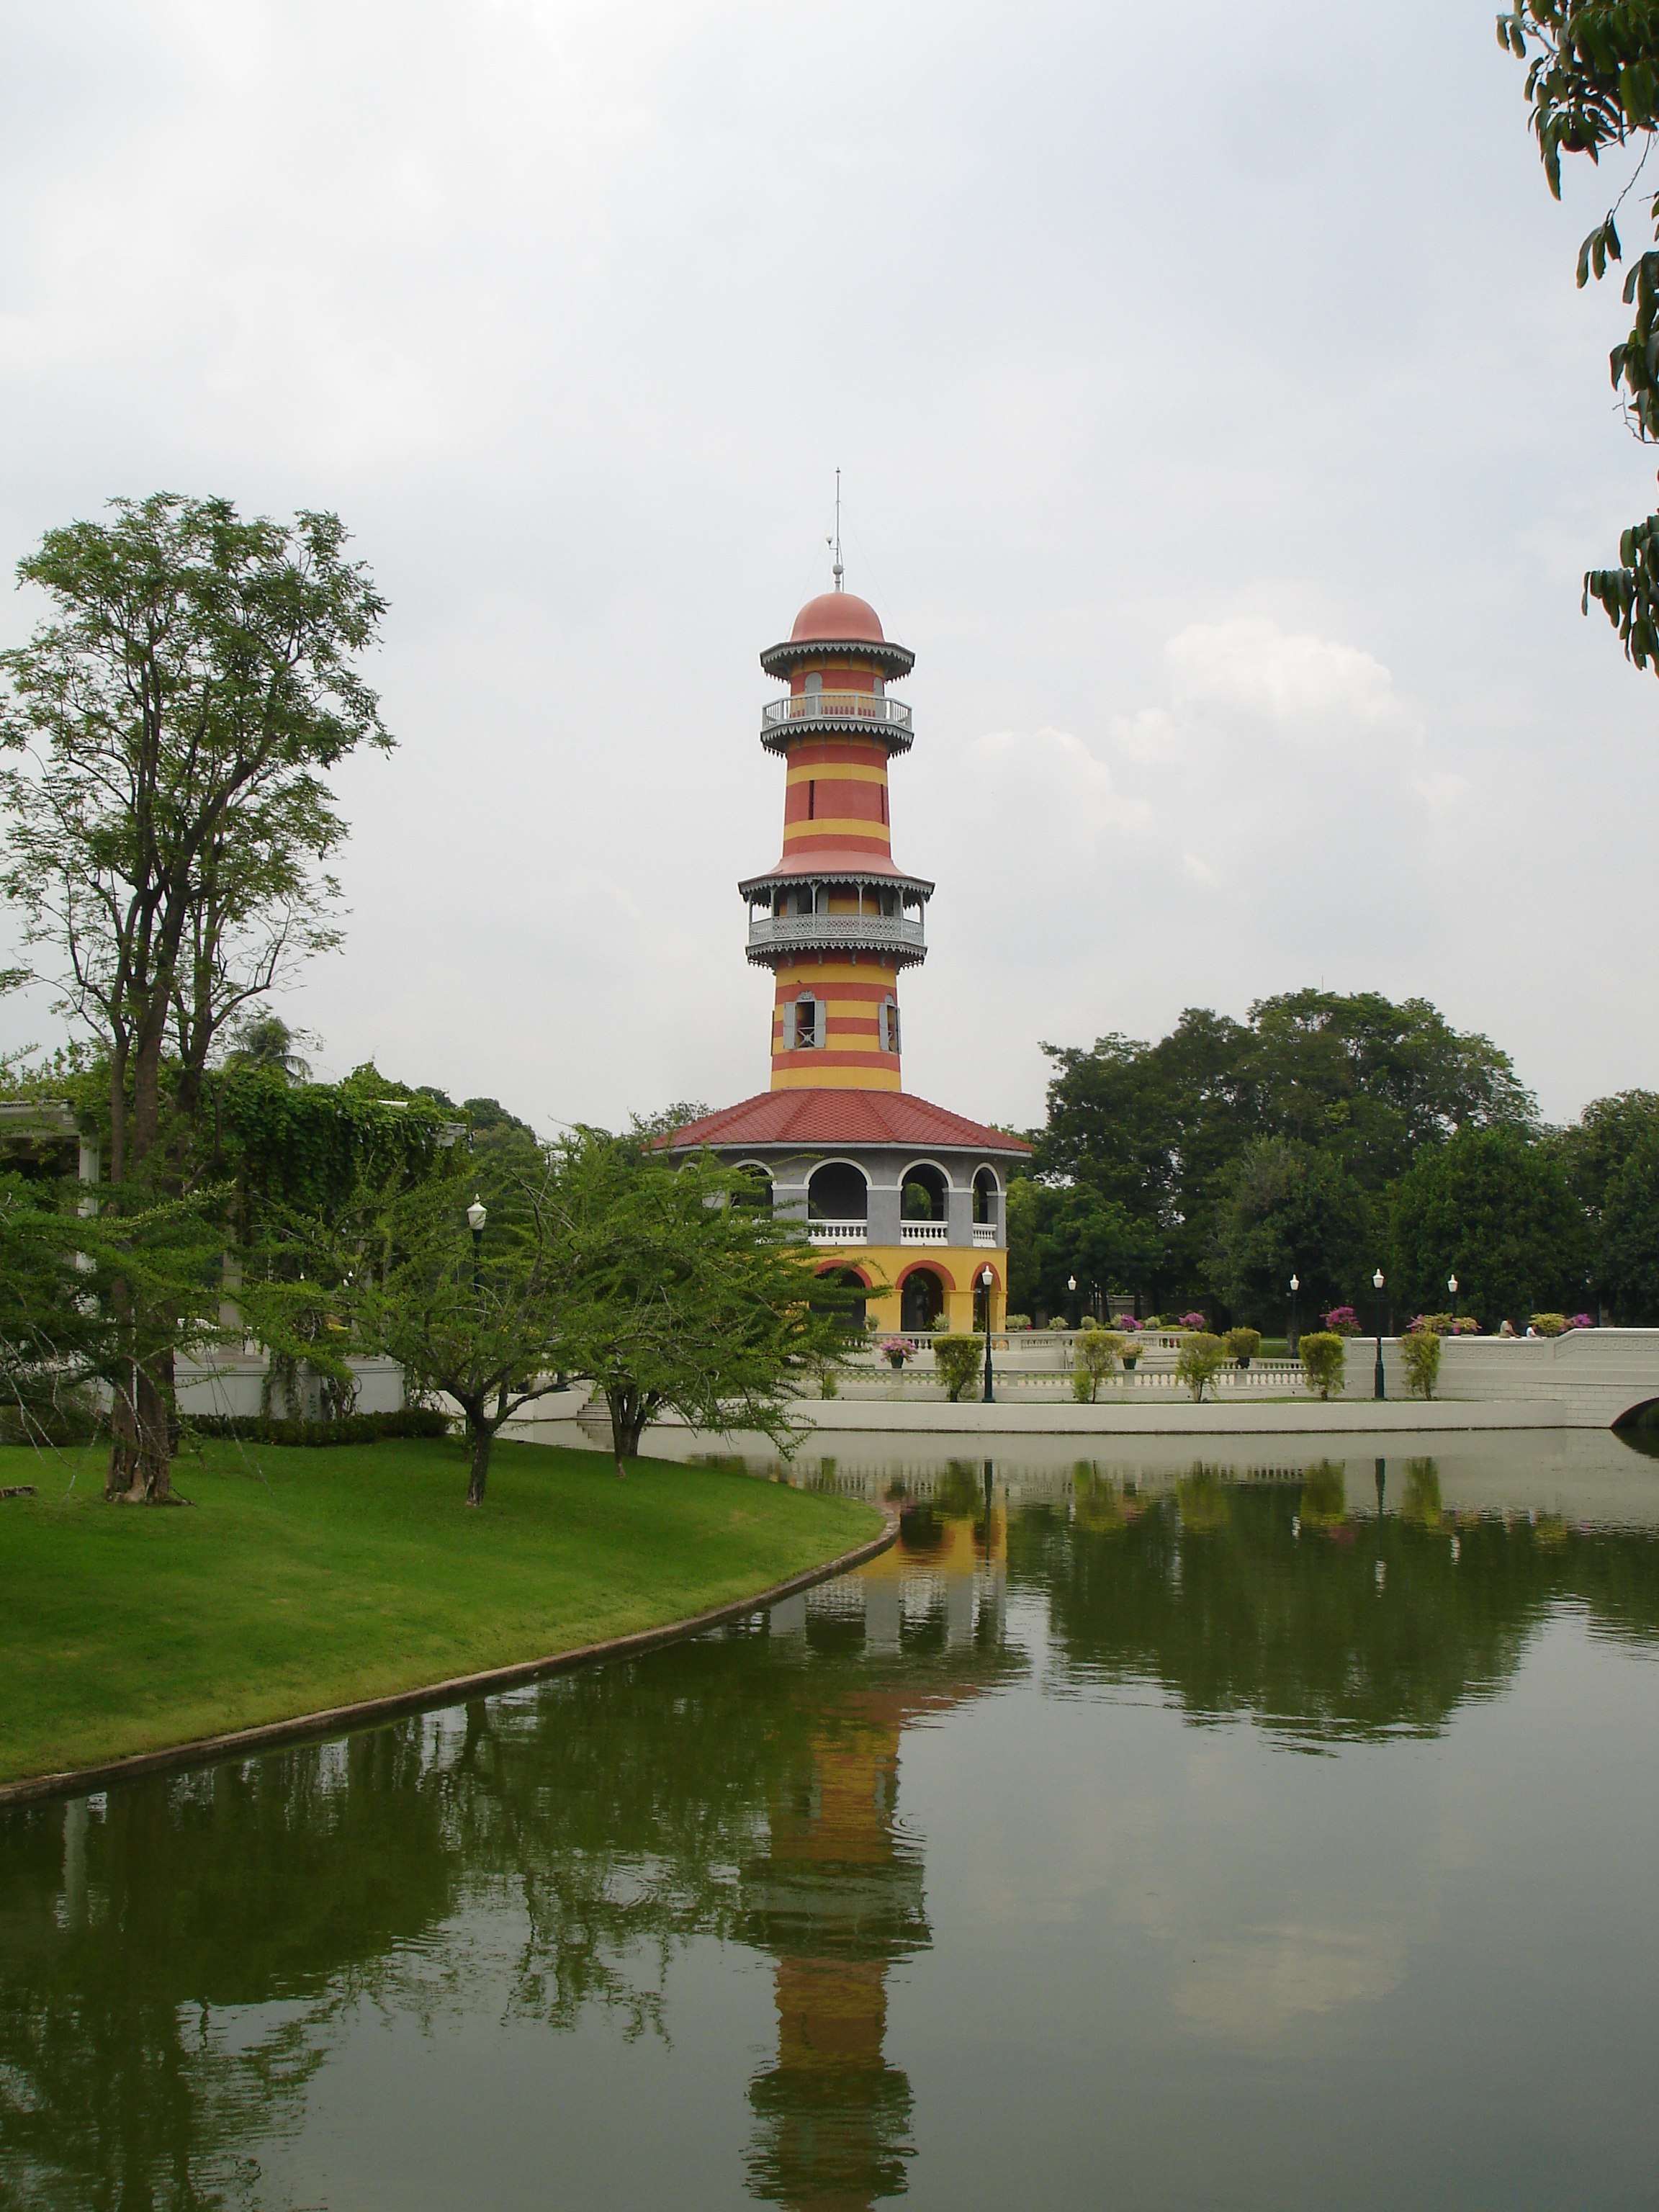 Ho Withun Thasana lookout tower in the Inner Palace compound of Bang Pa-In Royal Palace. Photo taken by Mark Jochim on May 16, 2006.